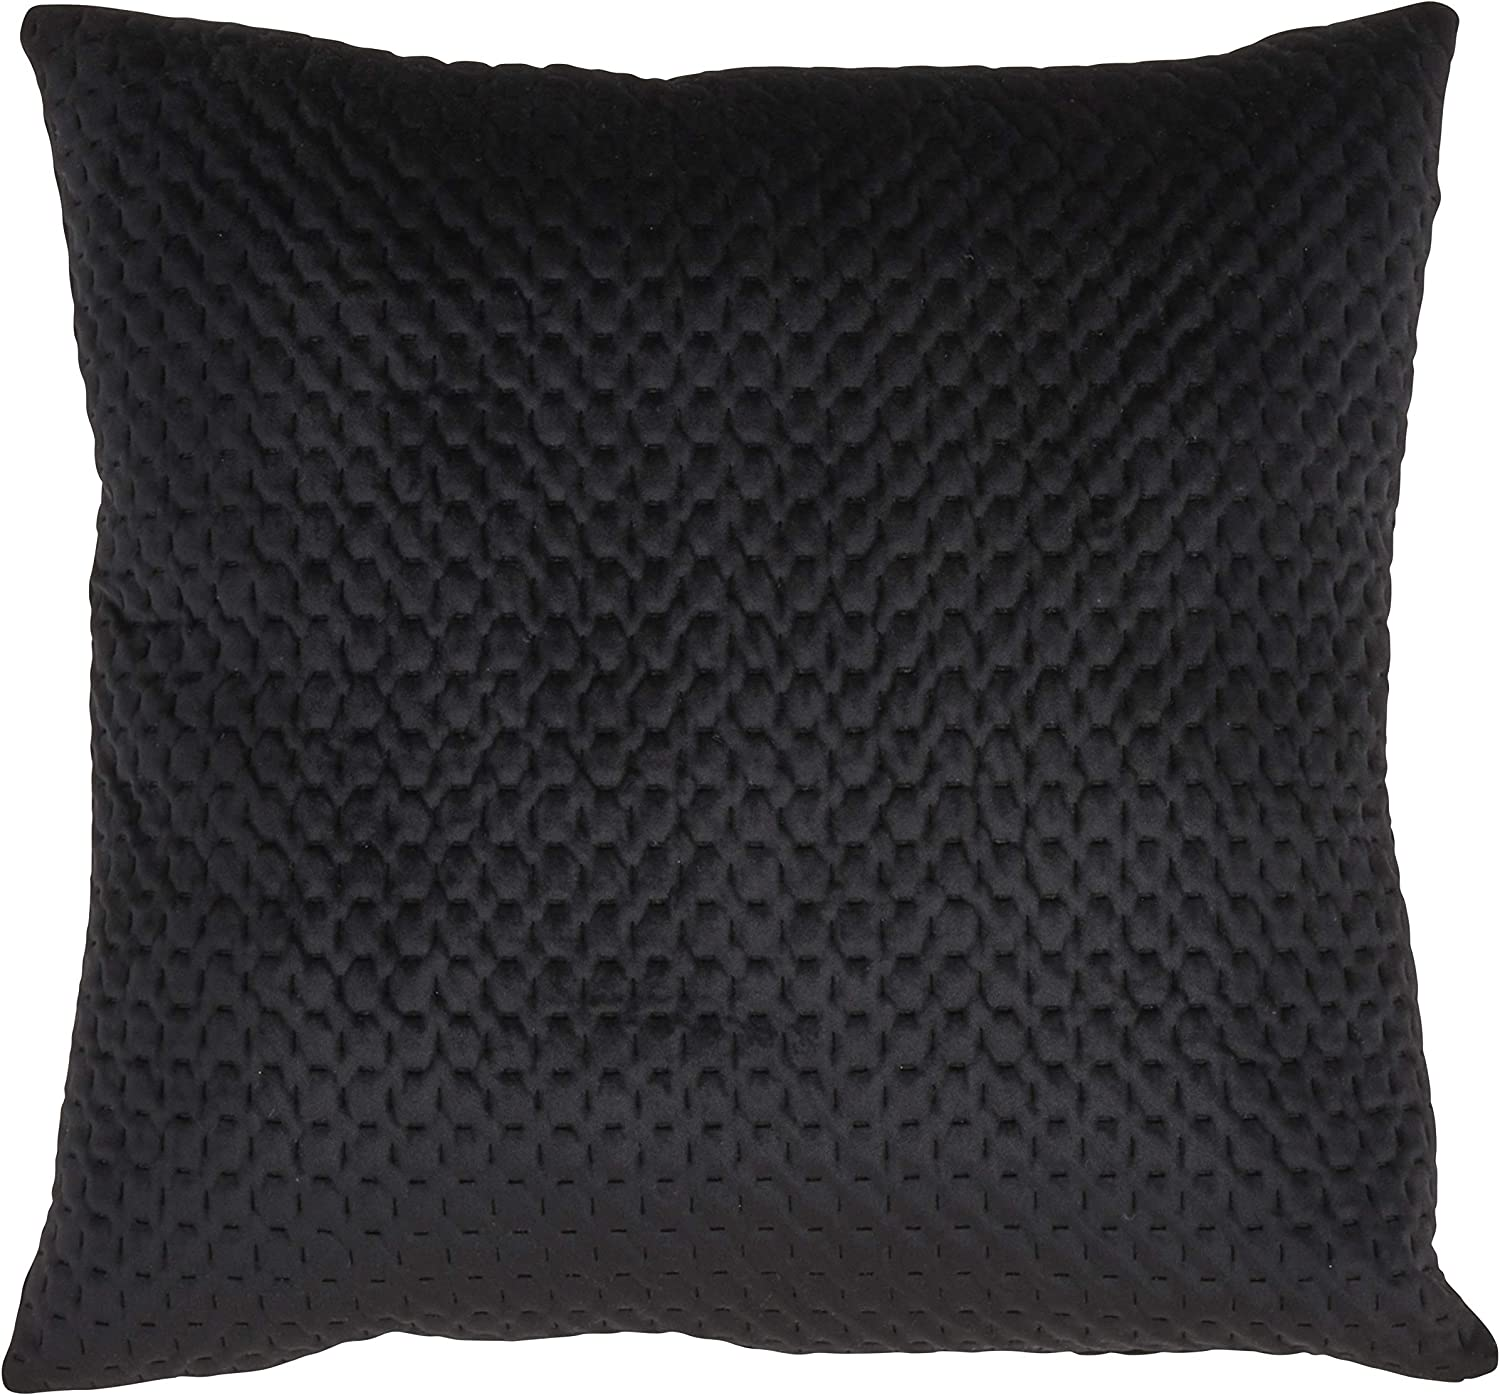 SARO LIFESTYLE Challenge the lowest price of Japan ☆ Padua Collection Pinsonic Poly Pillow with 70% OFF Outlet Velvet